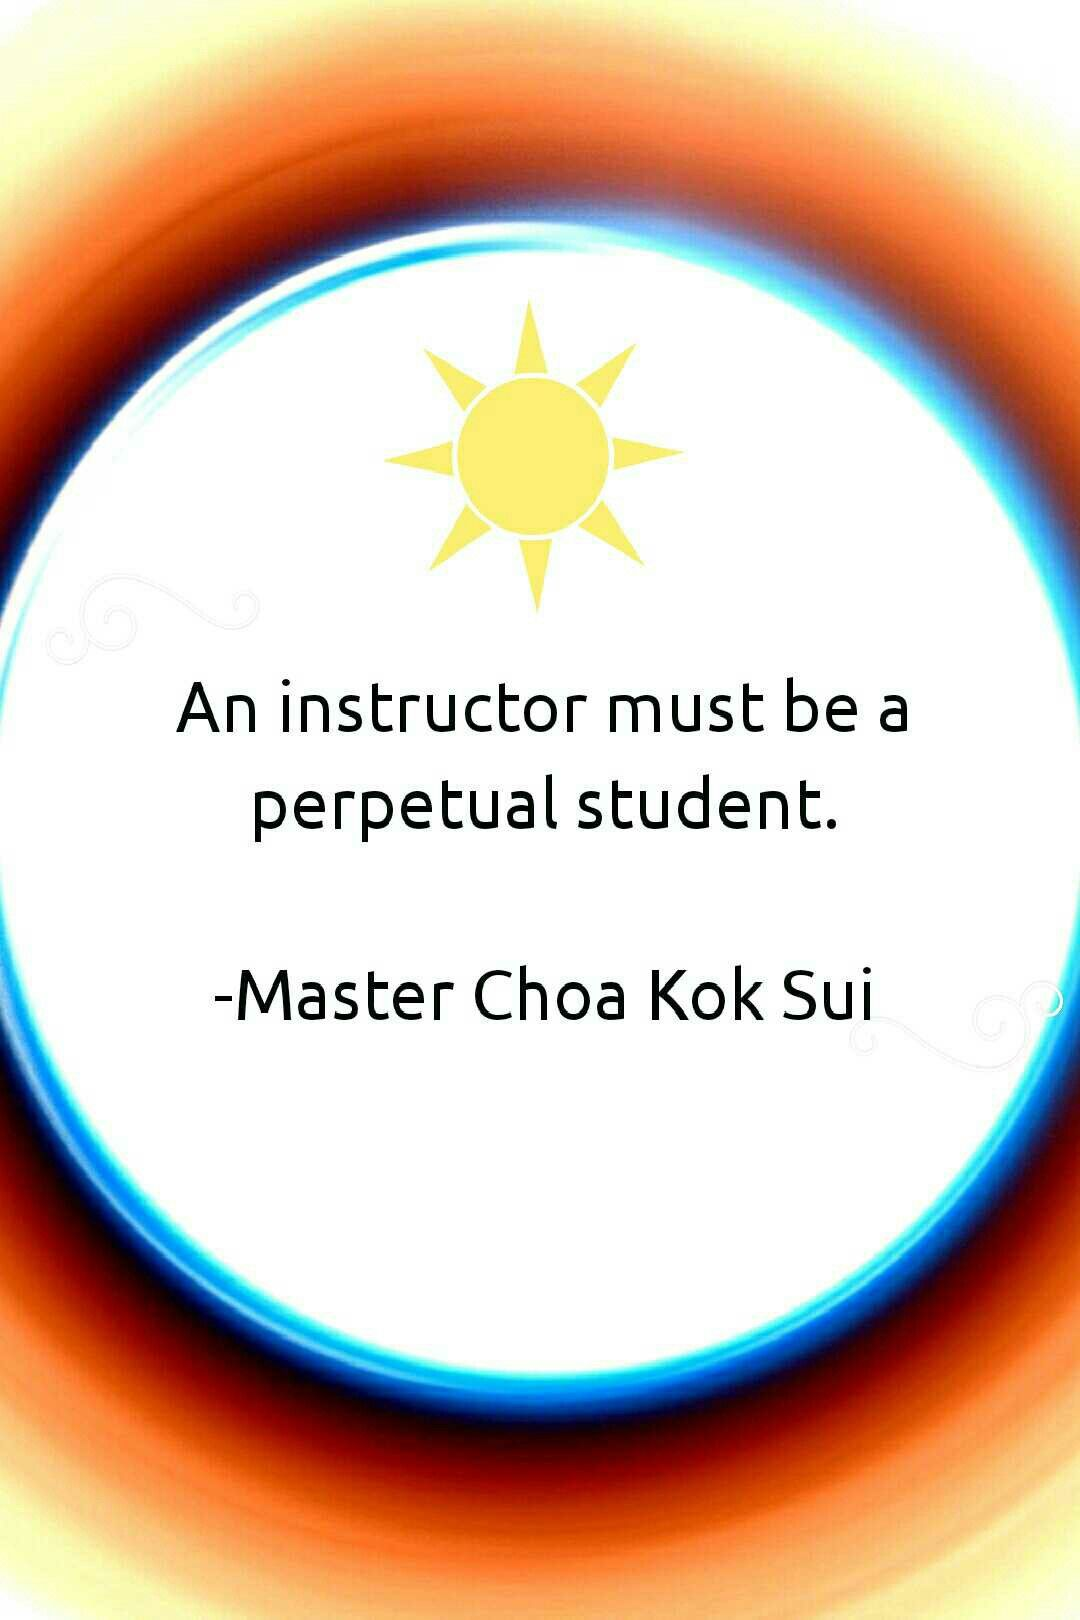 """""""An instructor must be a perpetual student."""" MCKS How often I have said this. If your teacher thinks they know it all, they are not a good teacher."""